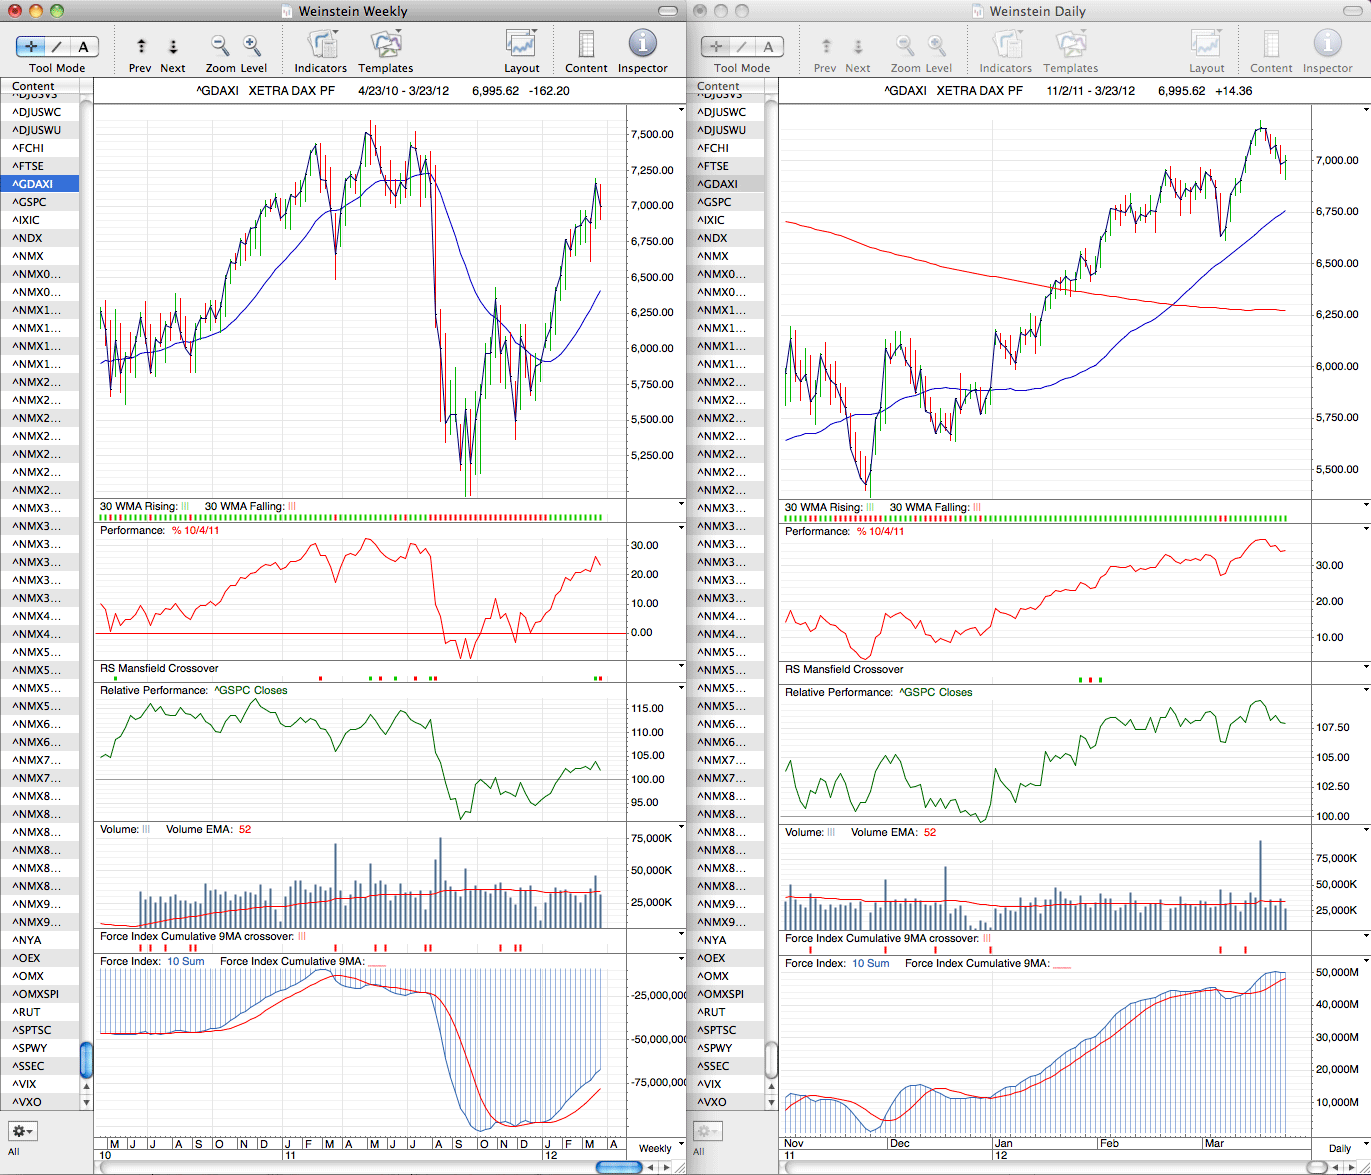 dax_weekly_23_3_12.png